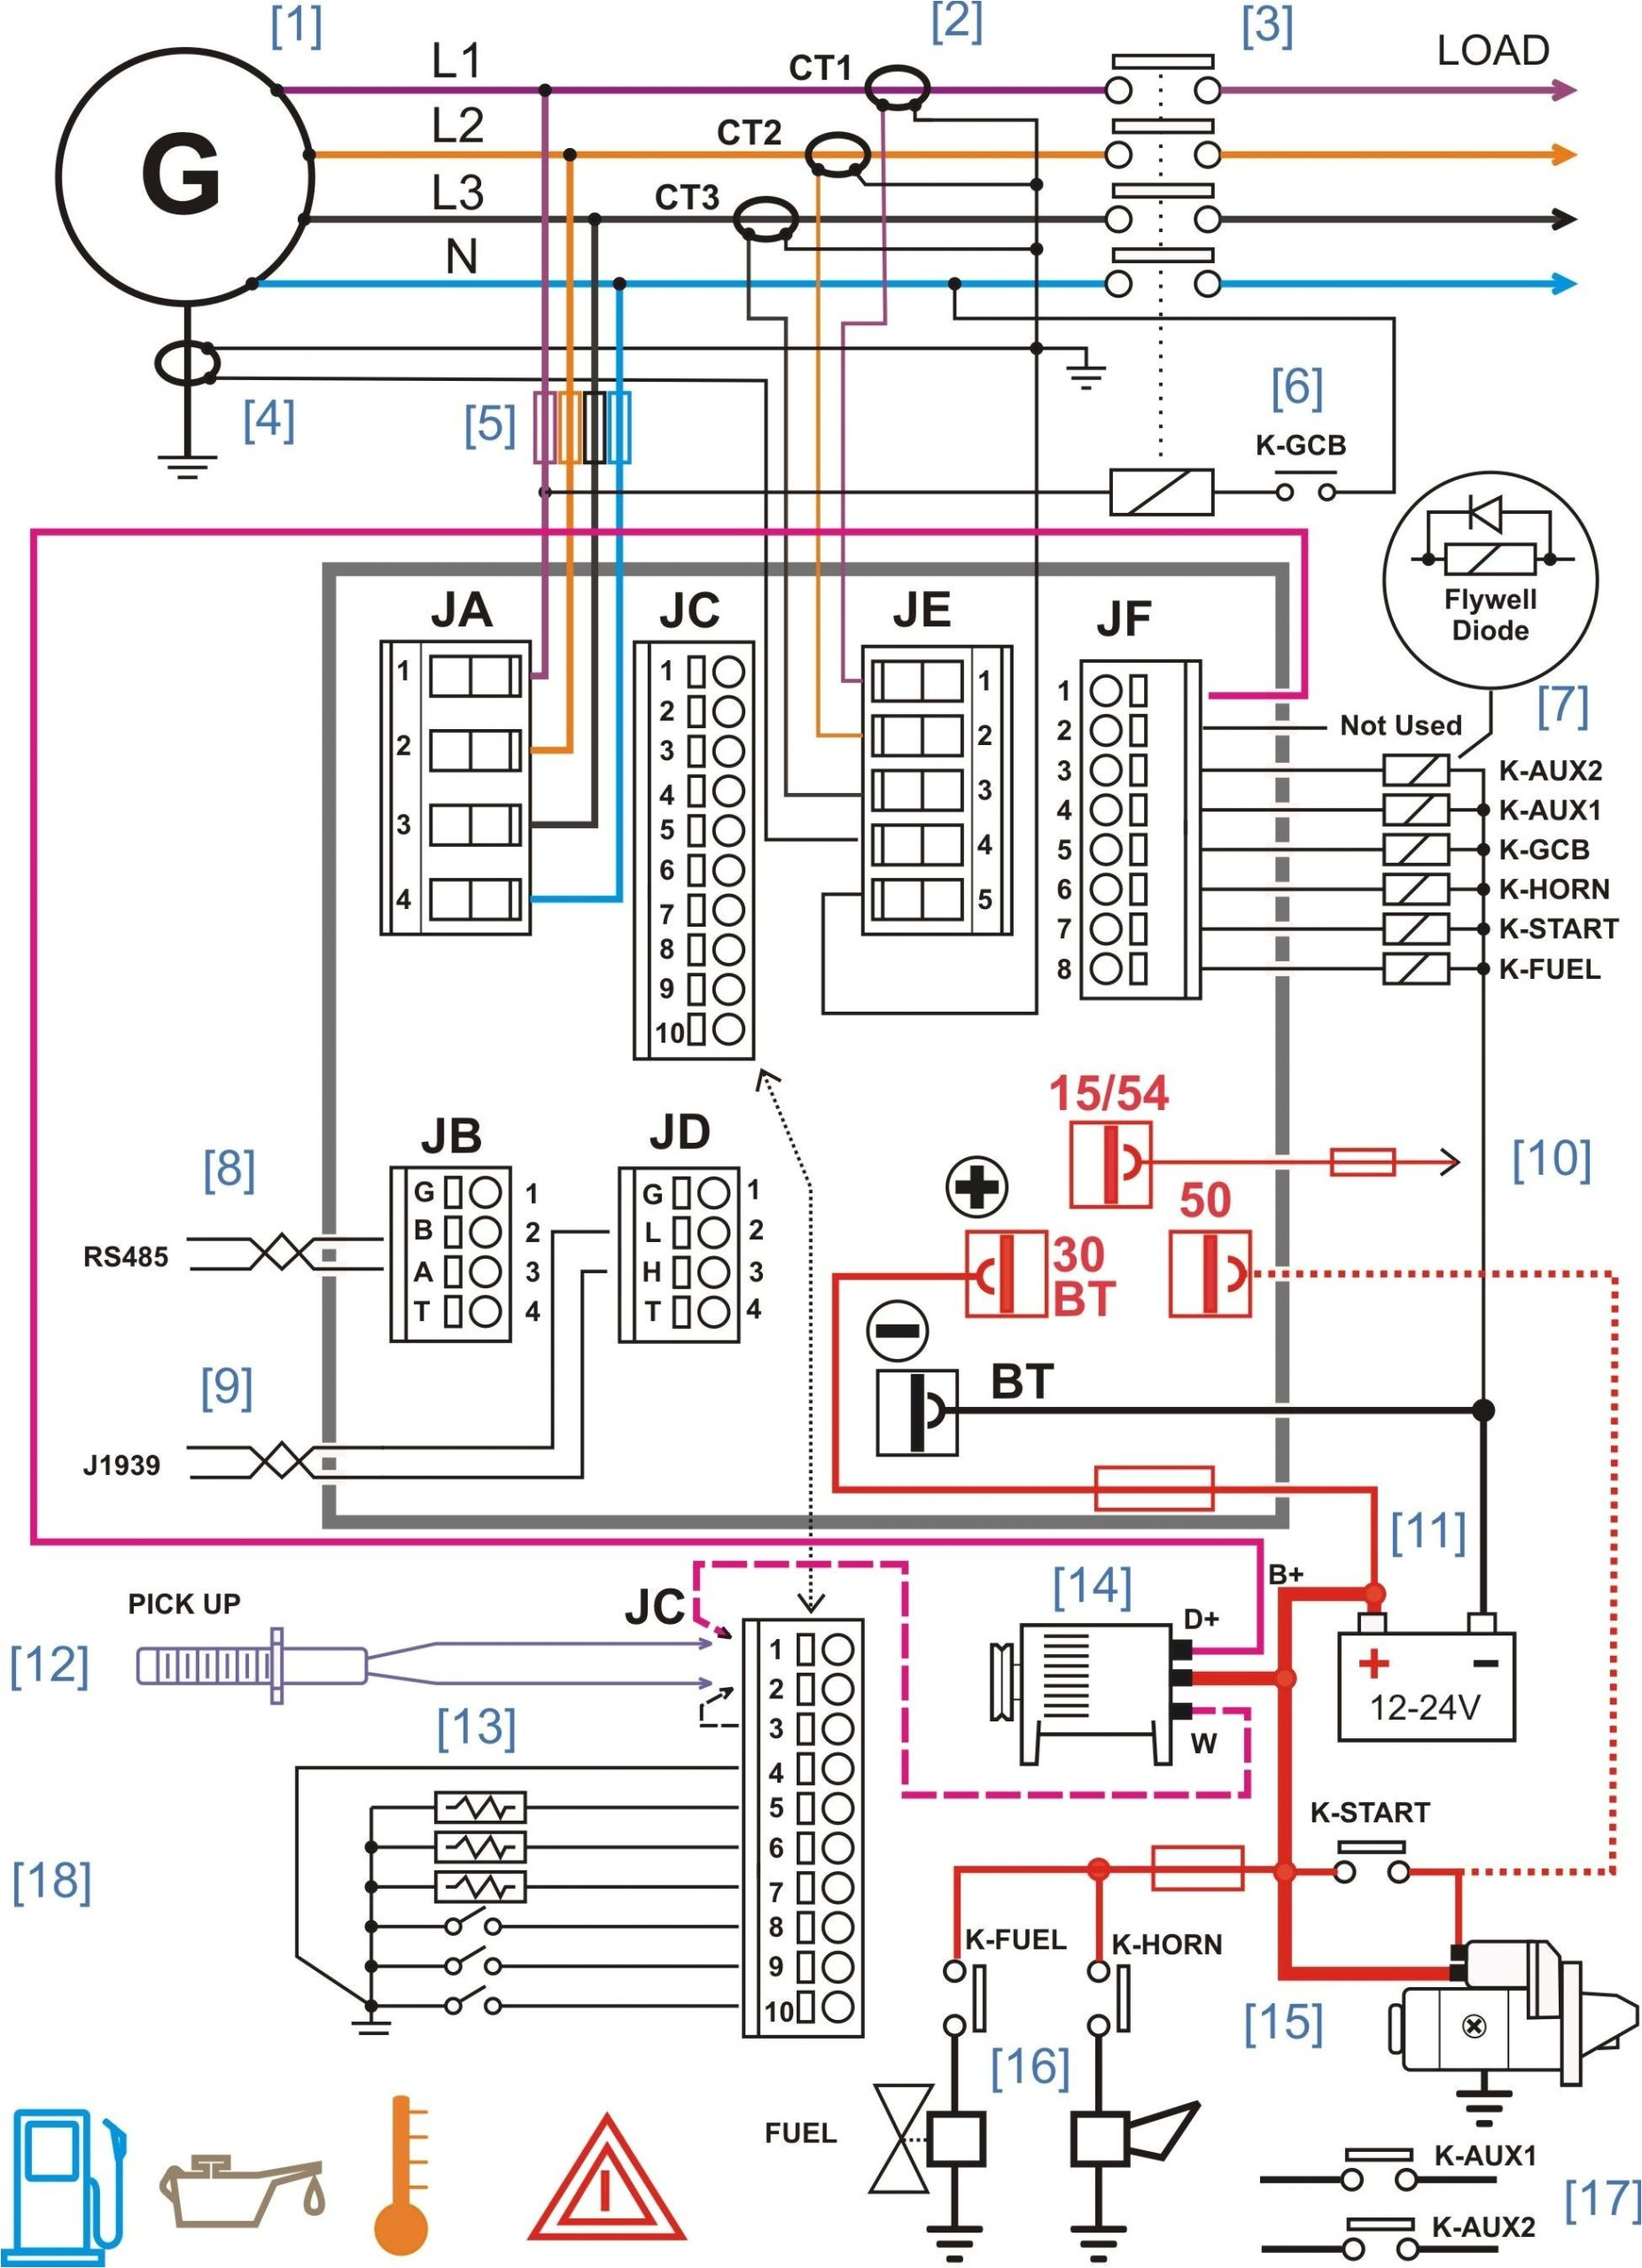 electrical wiring diagram software open source wiring diagram software open source download diagram creator free best of circuit diagram creator new download wiring diagram 16j jpg